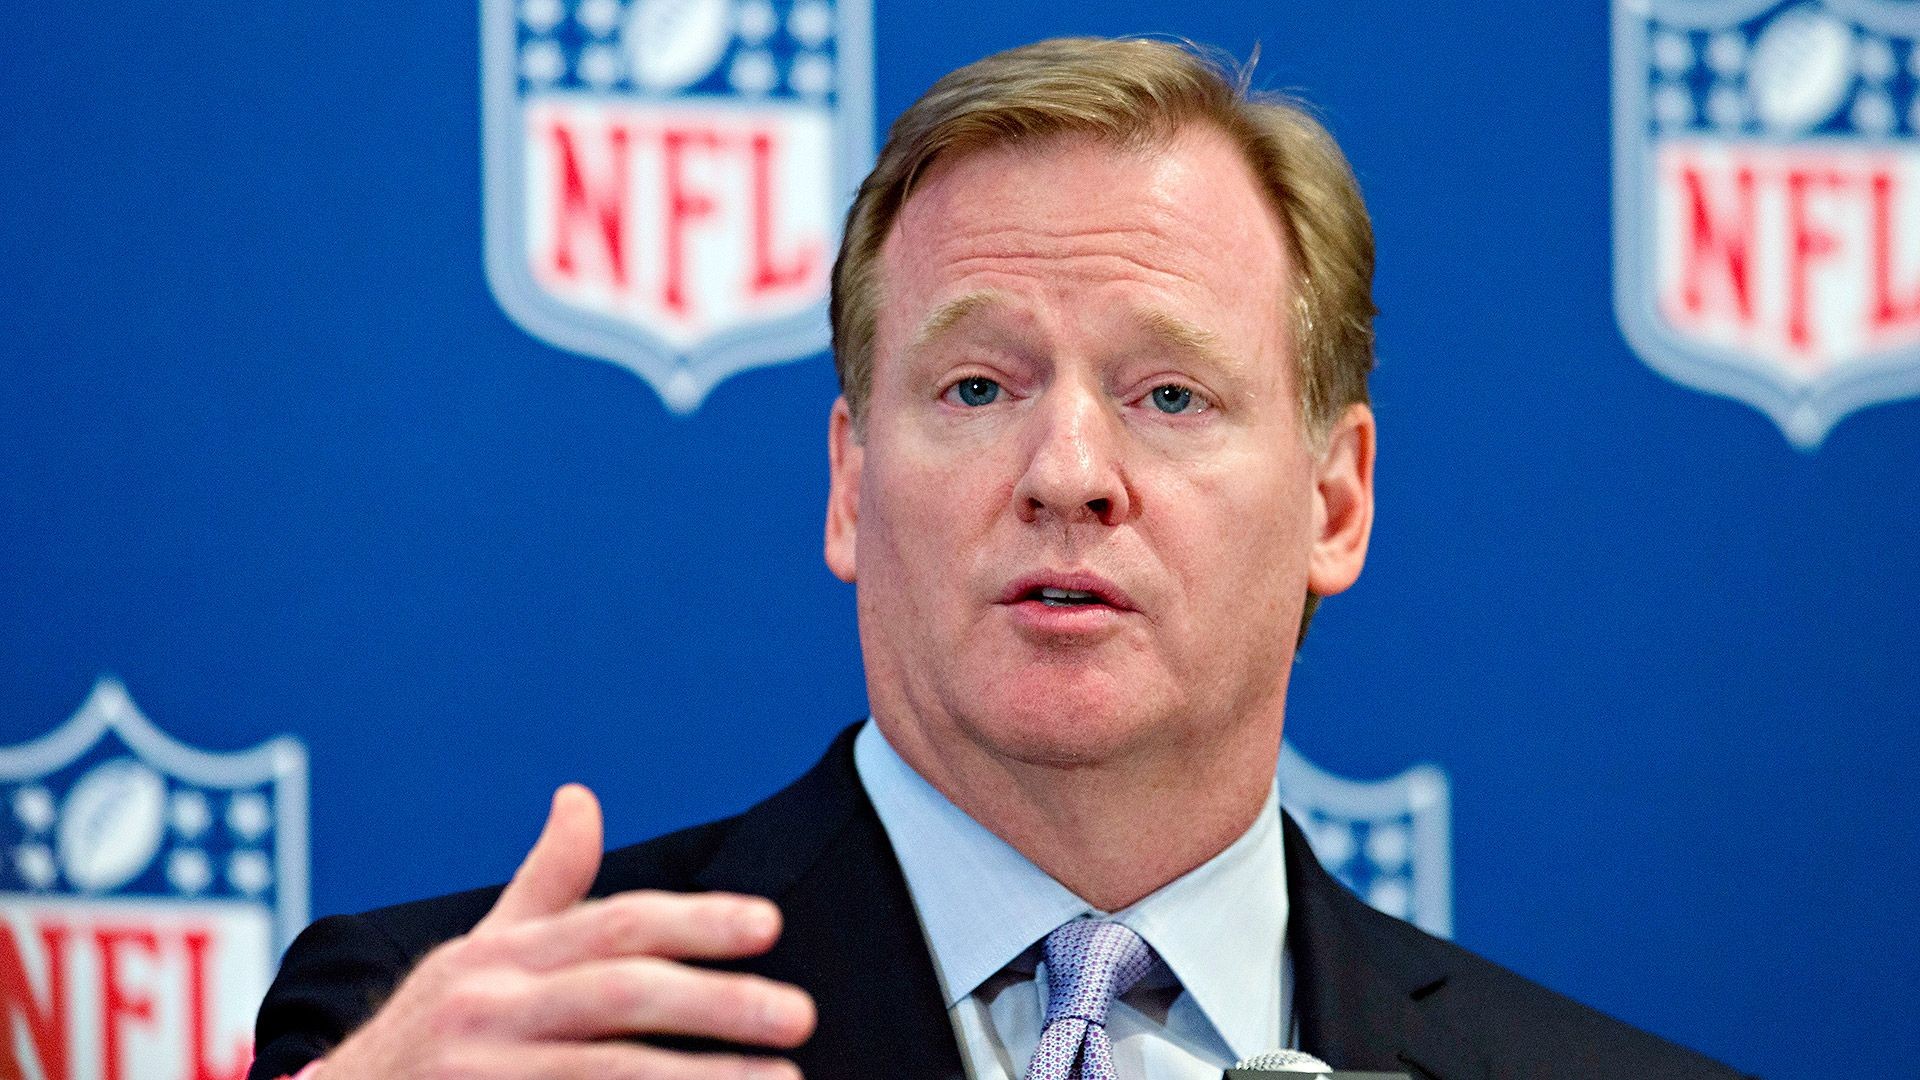 Roger Goodell believes four preseason games aren't necessary, and they don't meet the standard he expects from NFL play. The NFL commissioner doubled down on that stance Monday.